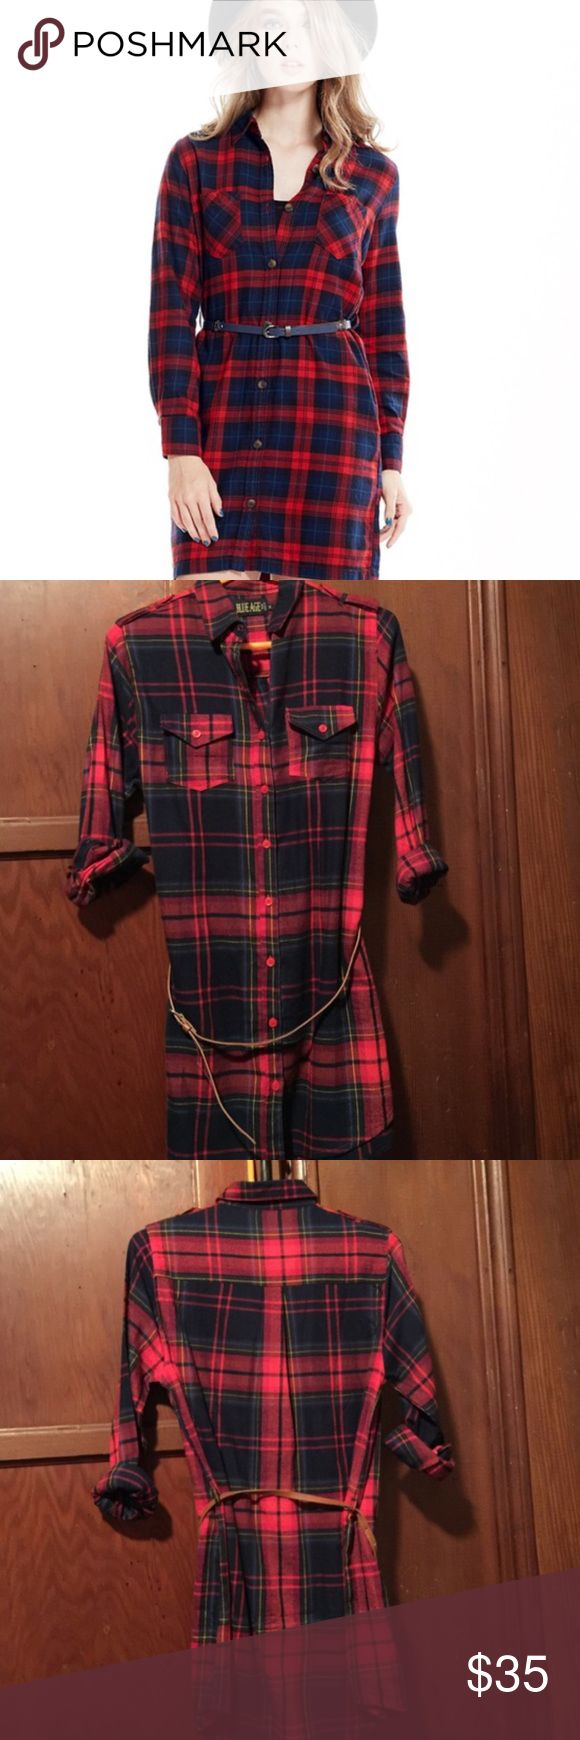 Red Plaid Flannel Shirt NWOT - comes with belt - can wear it as short dress or long shirt with tights - color of belt is beige - see last pictures for actual product color - material is 100% cotton - machine wash cold only - very cute and chic - wear it with cowboy boots for extra touch of coolness - no trades Blue Age Tops